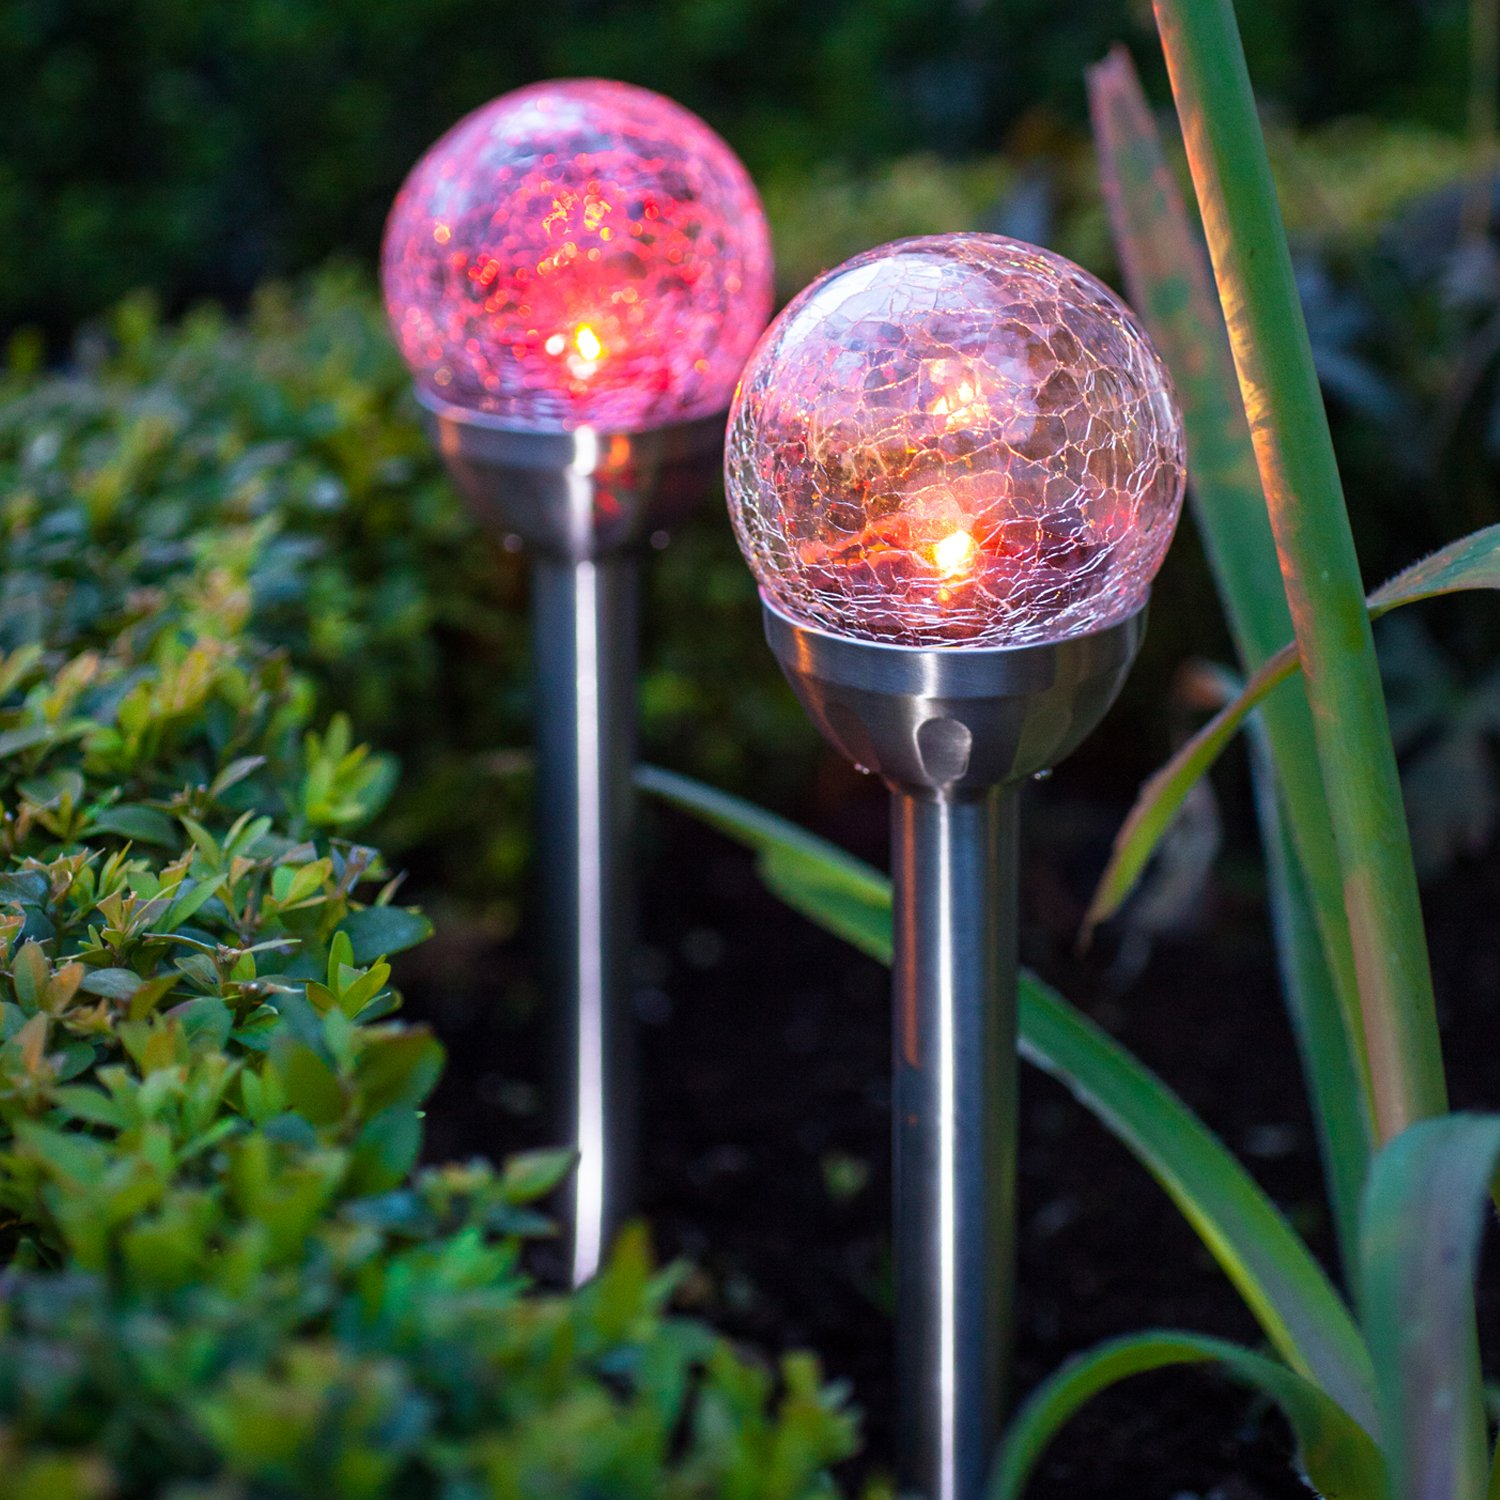 Set of 2 colour changing led crackle glass ball solar garden stake set of 2 colour changing led crackle glass ball solar garden stake lights by lights4fun amazon garden outdoors aloadofball Choice Image